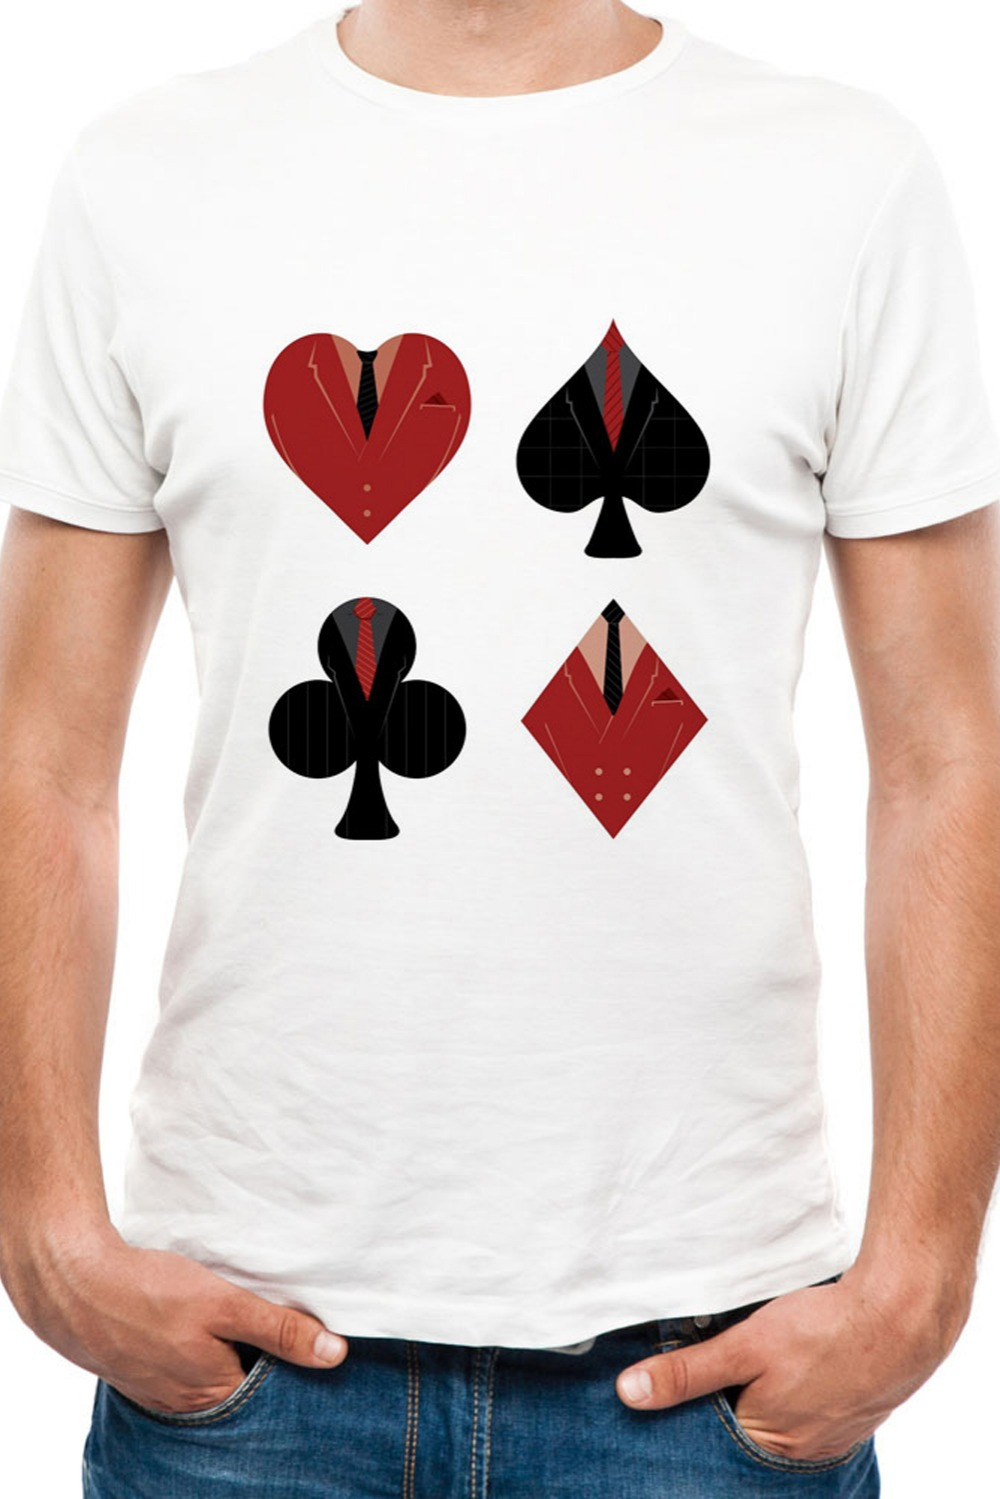 2018 Summer New Men T-shirt 3D Poker Fashion Short-sleeved Tops Round Neck T-shirt Poker short-sleeved O-neck T-shirt